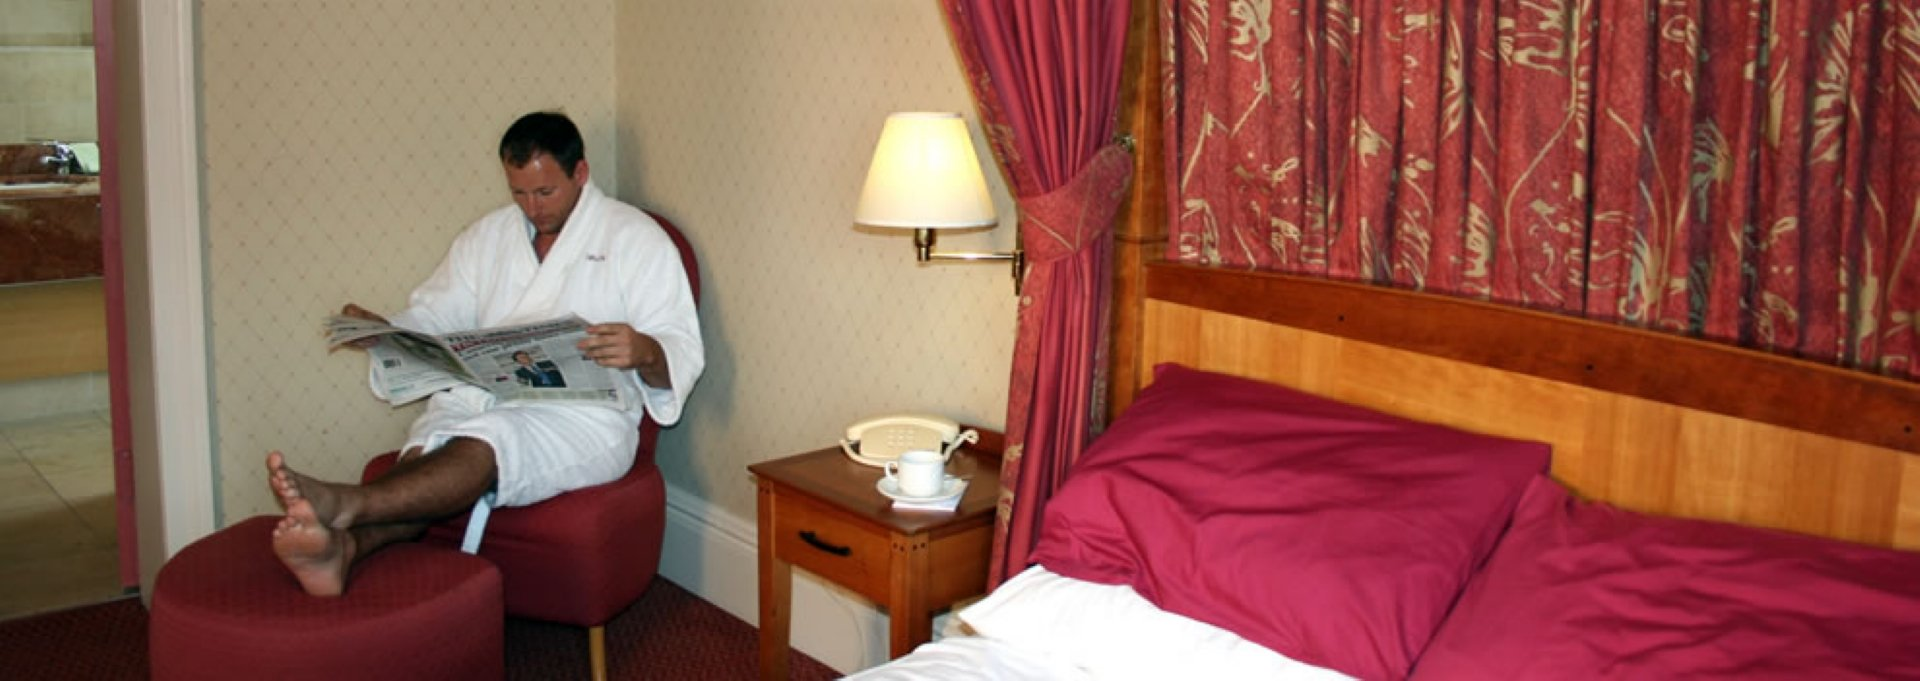 Deluxe suite at The Cairndale Hotel